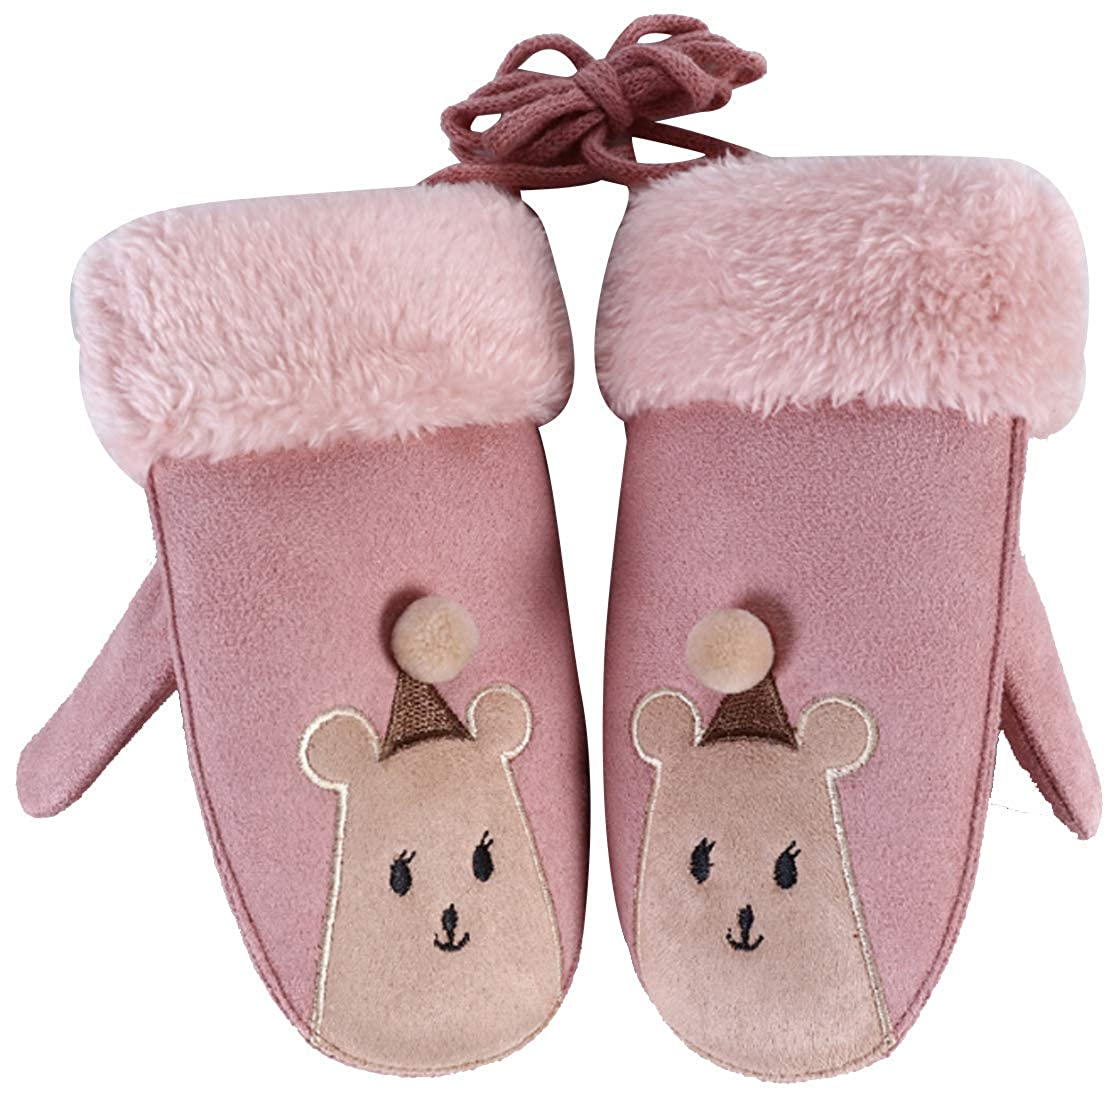 ACVIP Unisex Kids Animal Shaped Warm Lining Artificial Chamois Mittens